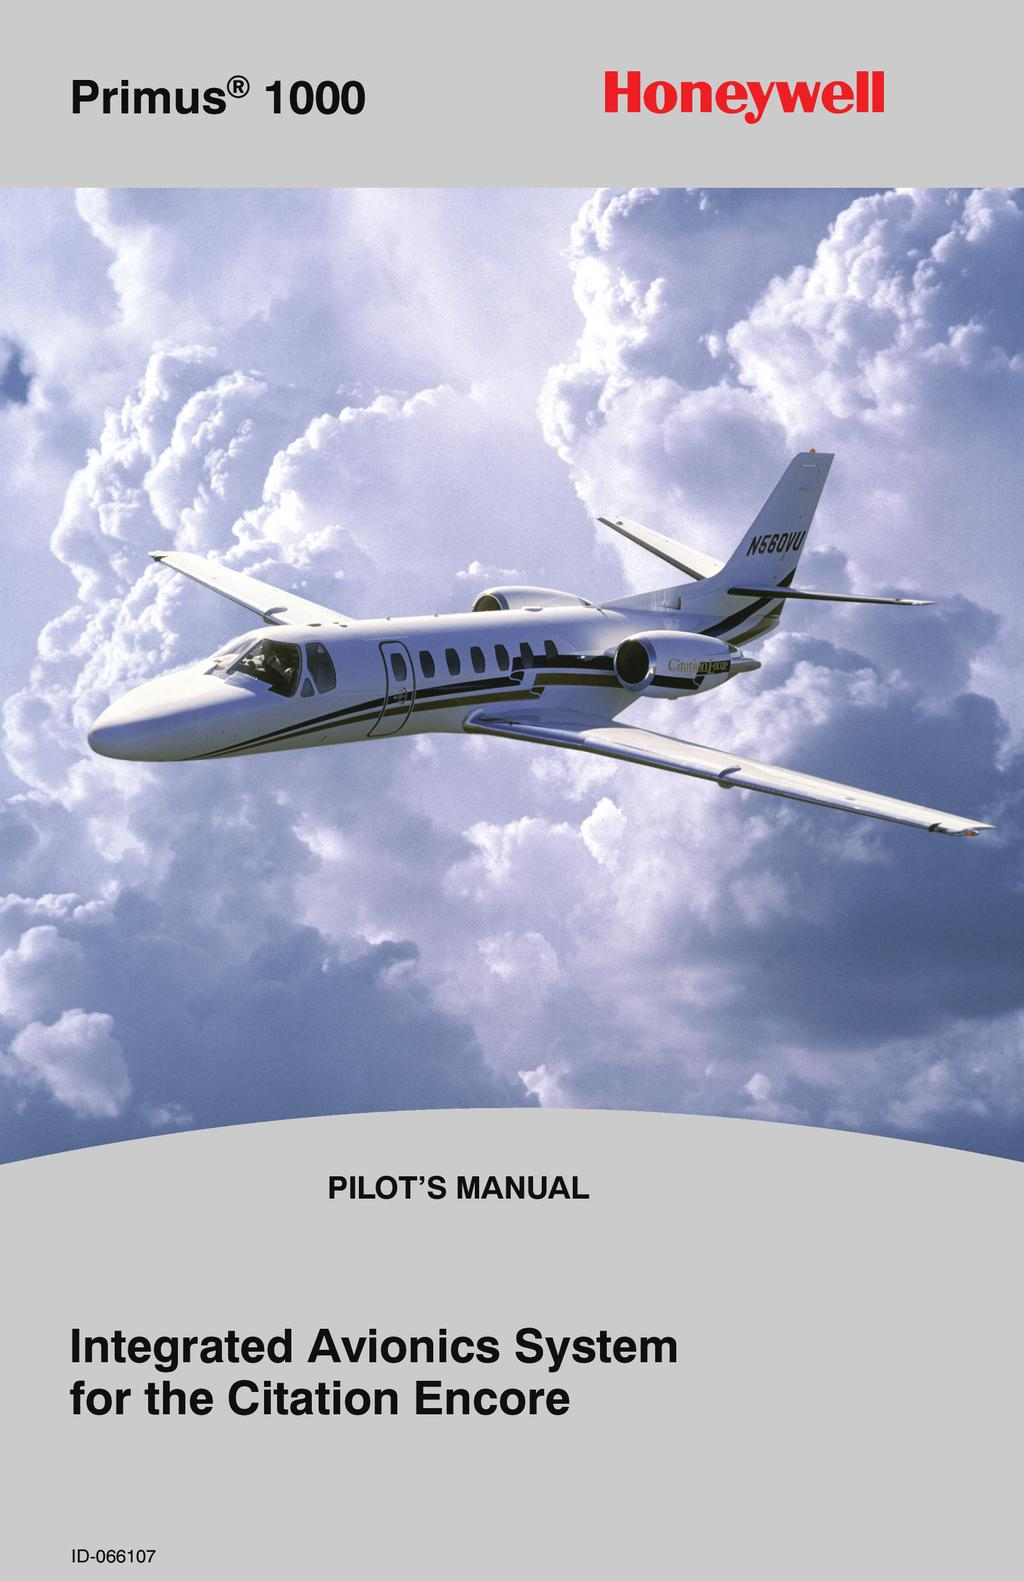 TO: HOLDERS OF THE PRIMUS 1000 INTEGRATED AVIONICS SYSTEM